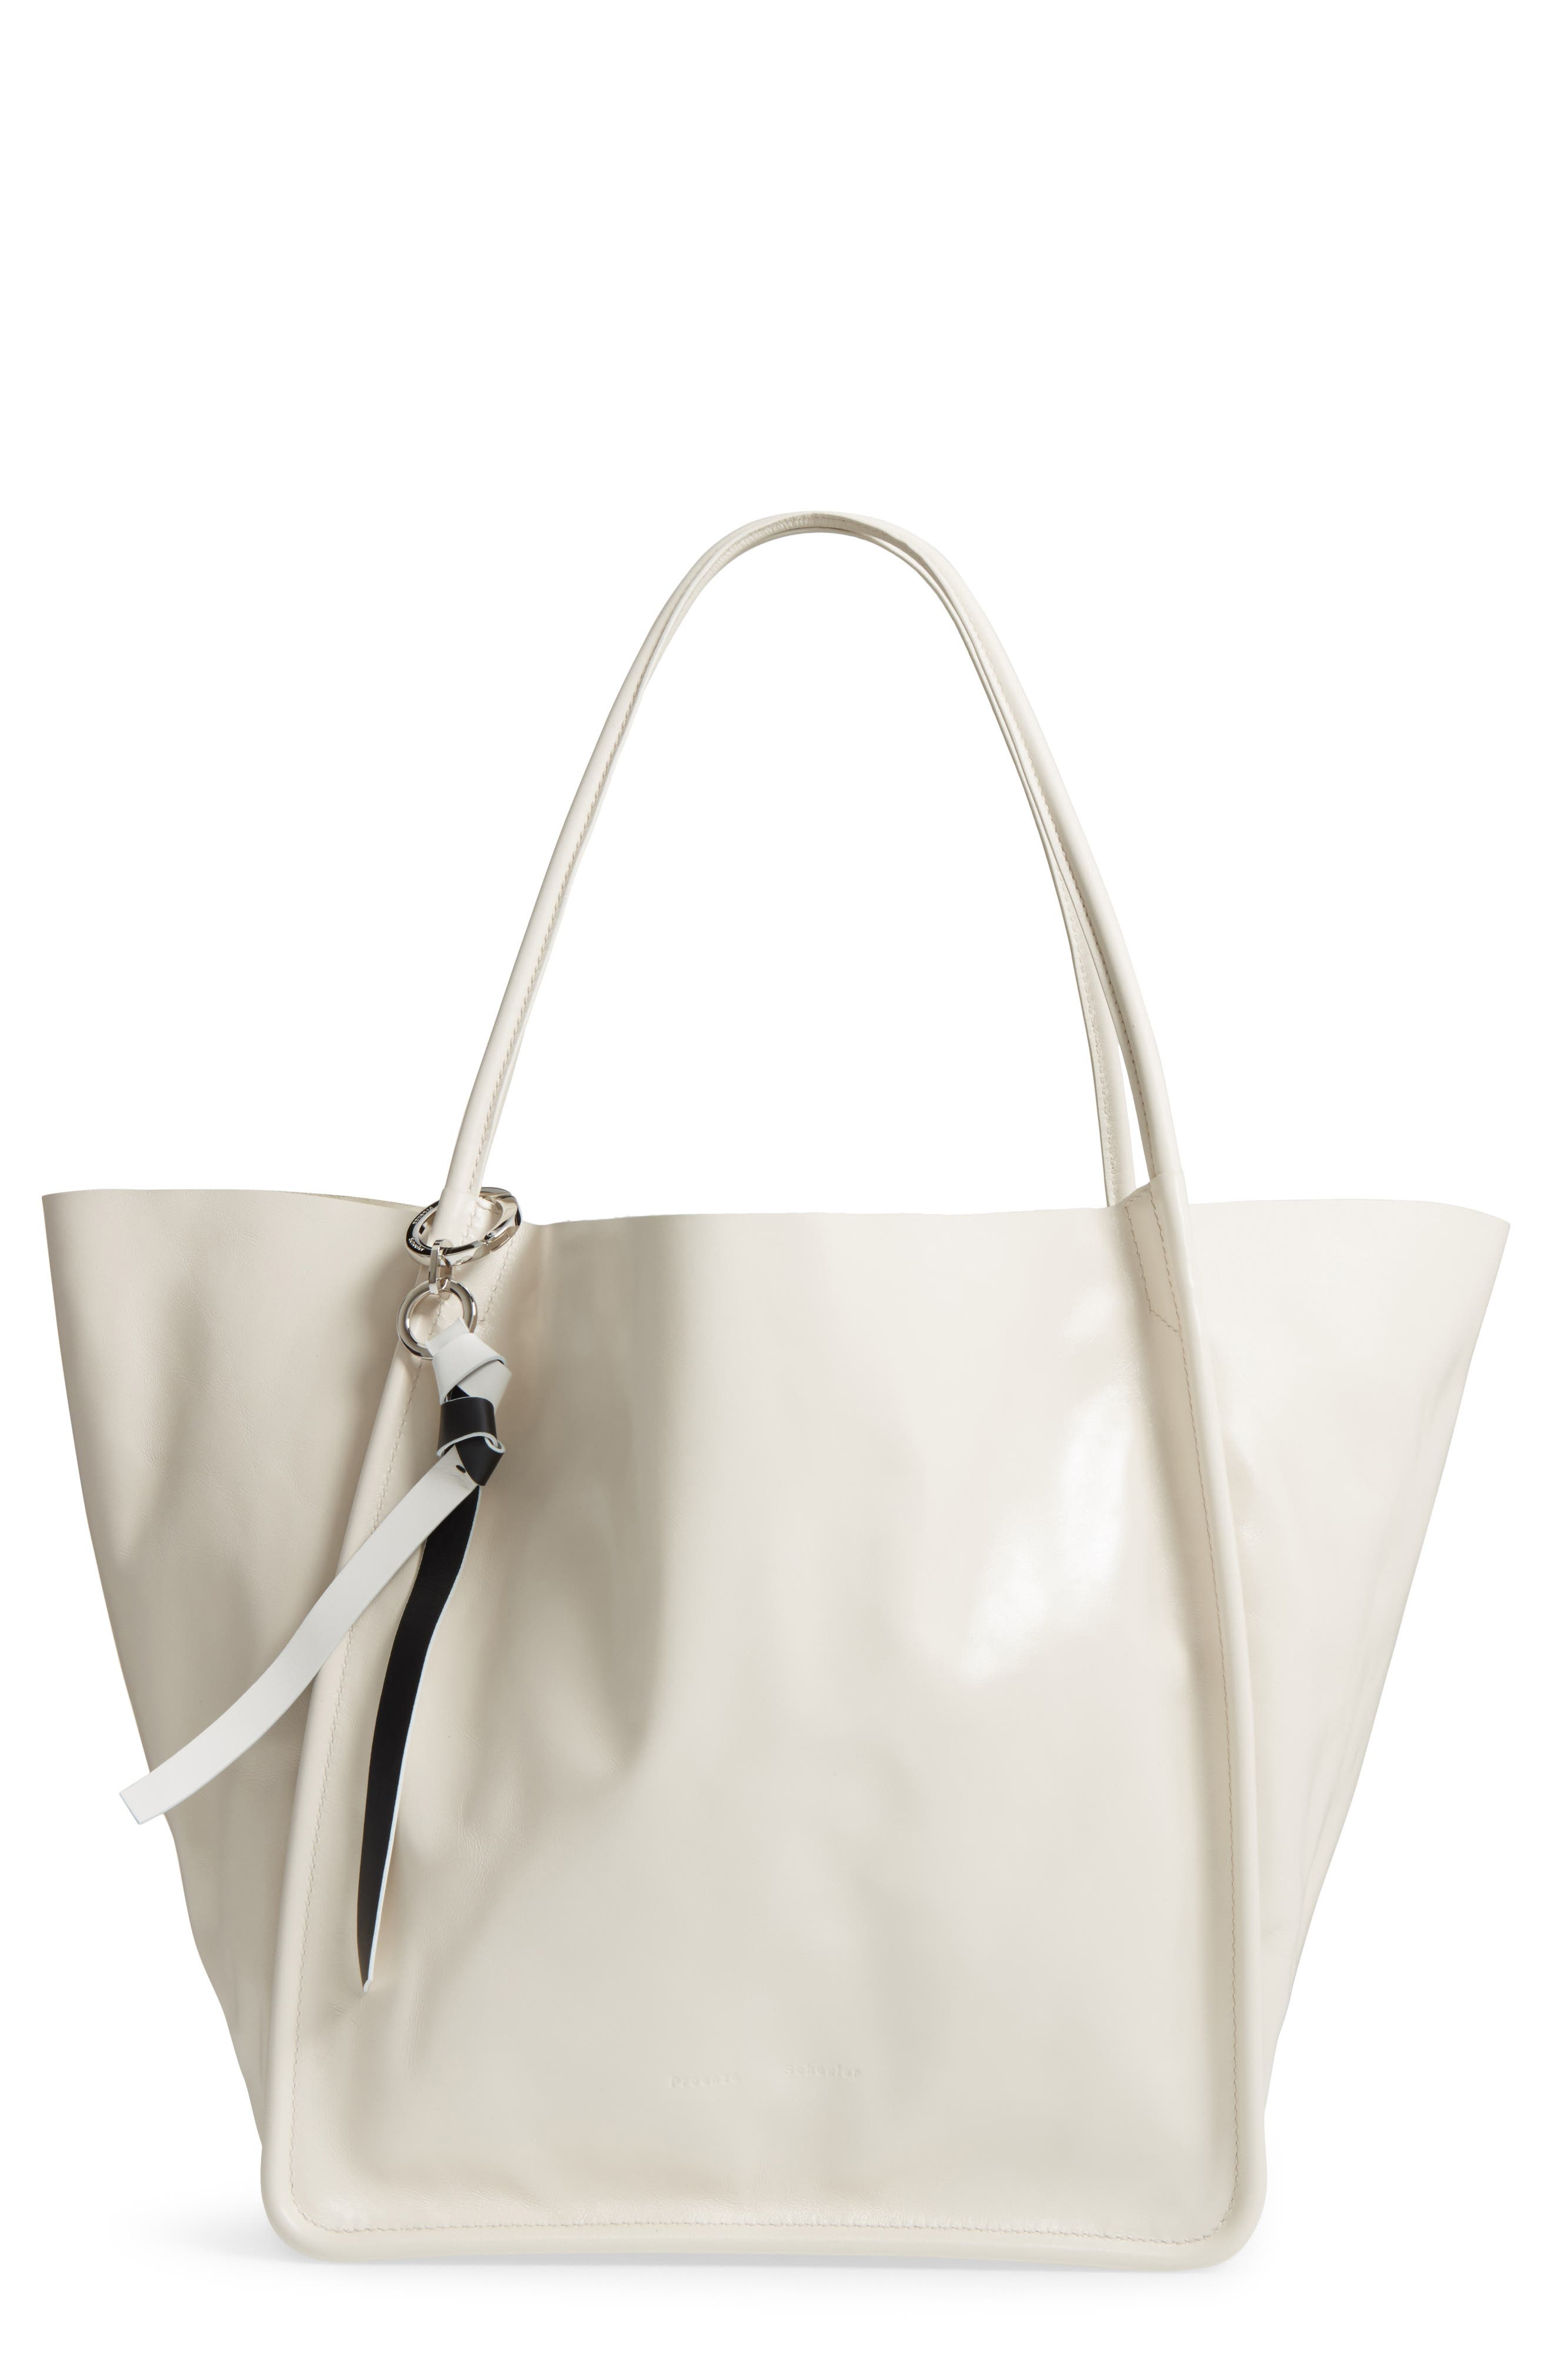 Main Image - Proenza Schouler Extra Large Leather Tote